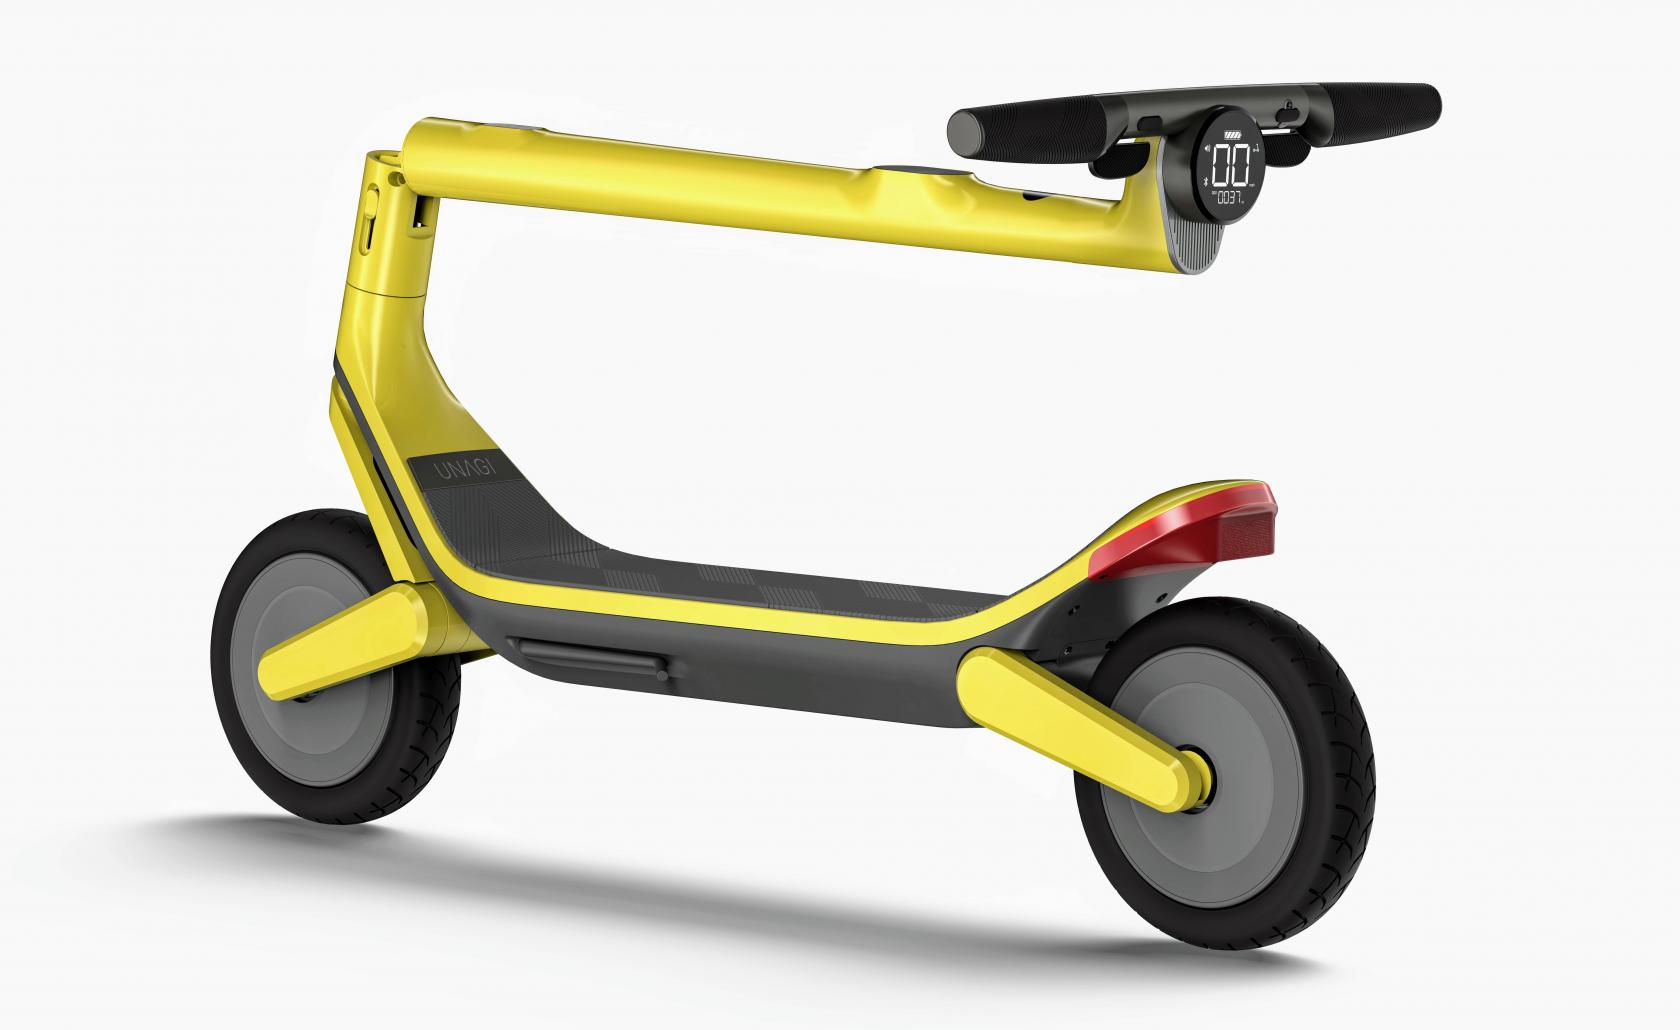 The Model Eleven Scooter folded